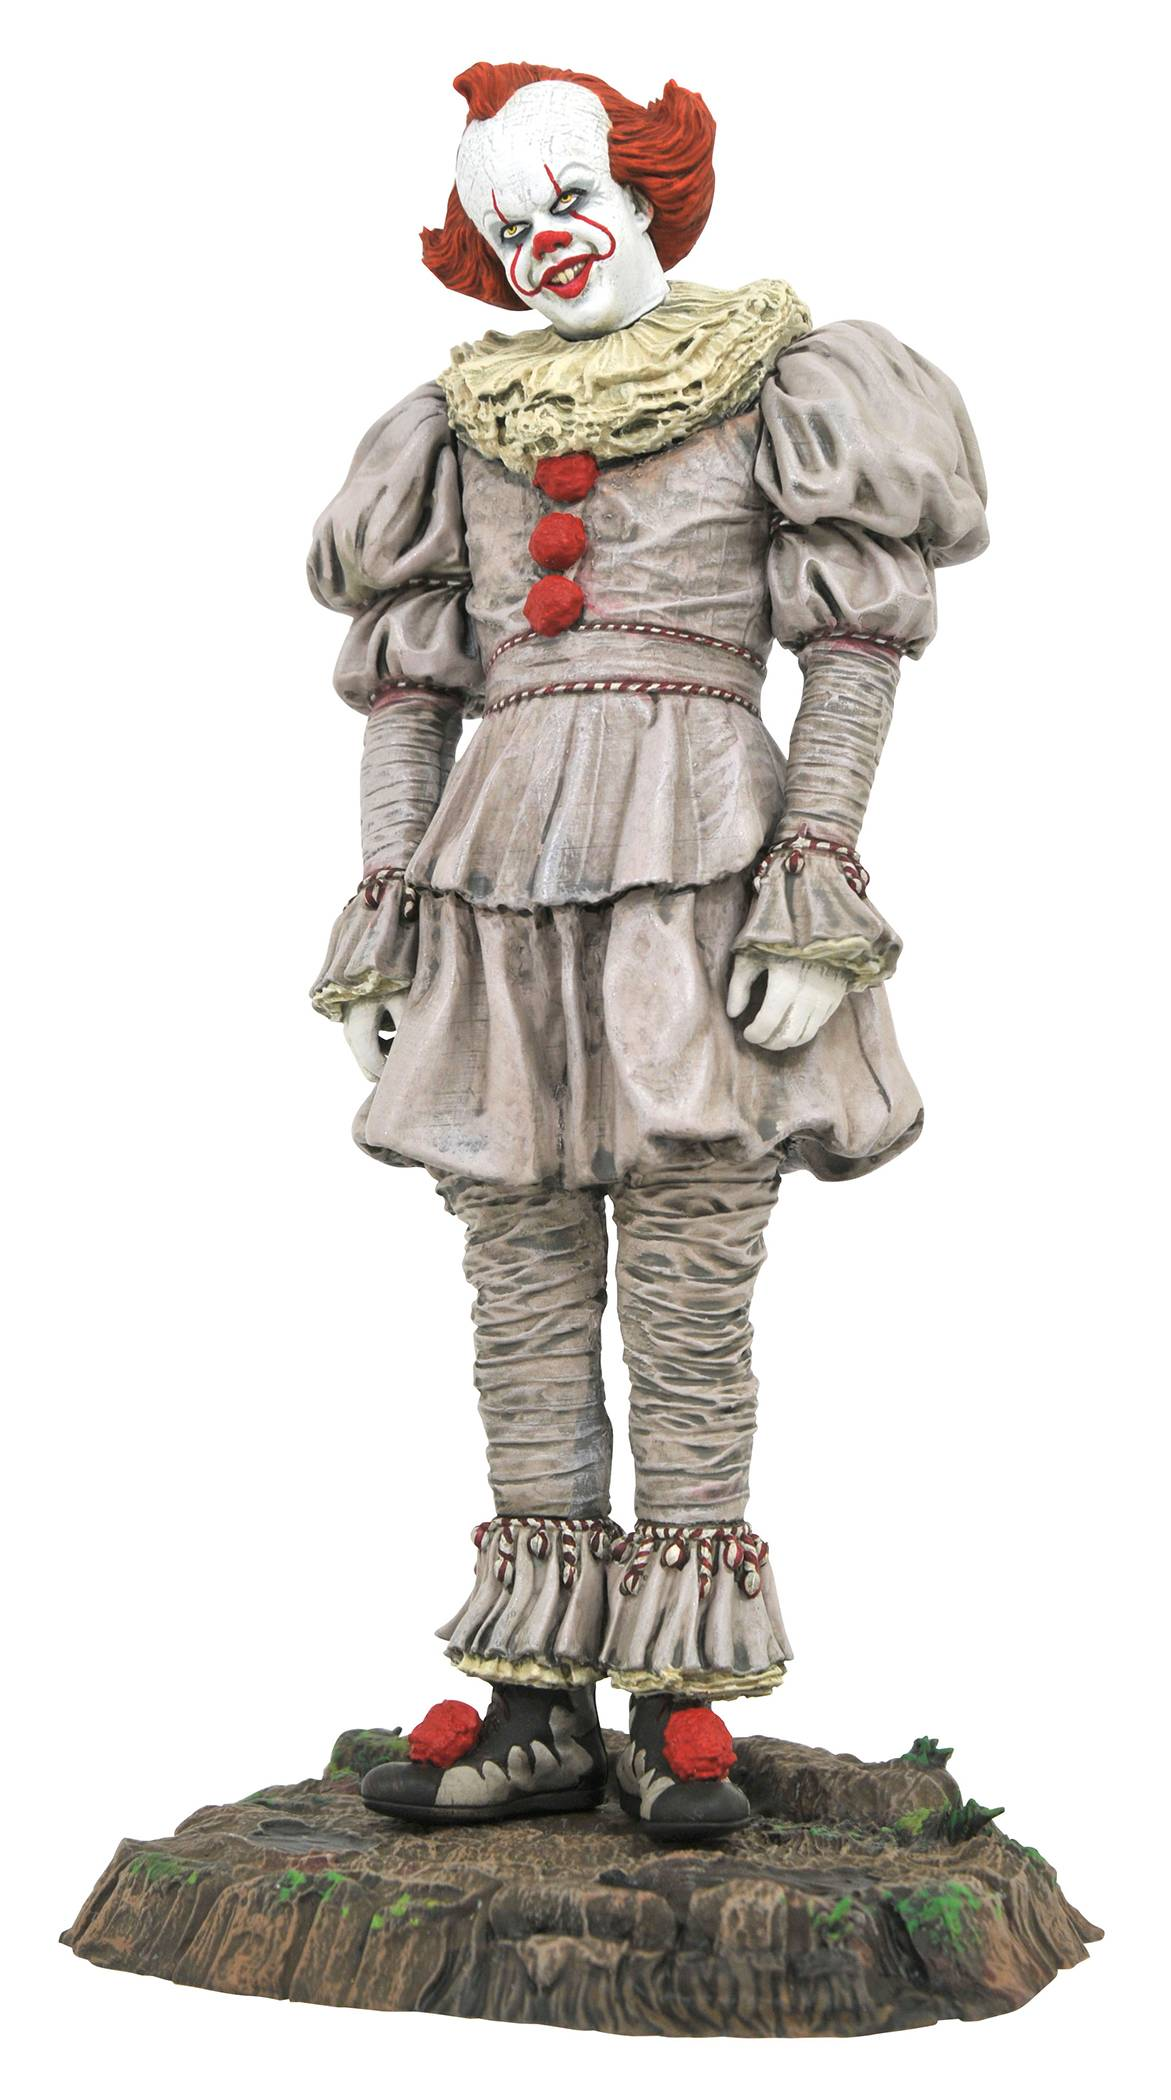 IT 2 GALLERY PENNYWISE SWAMP PVC STATUE (O/A)